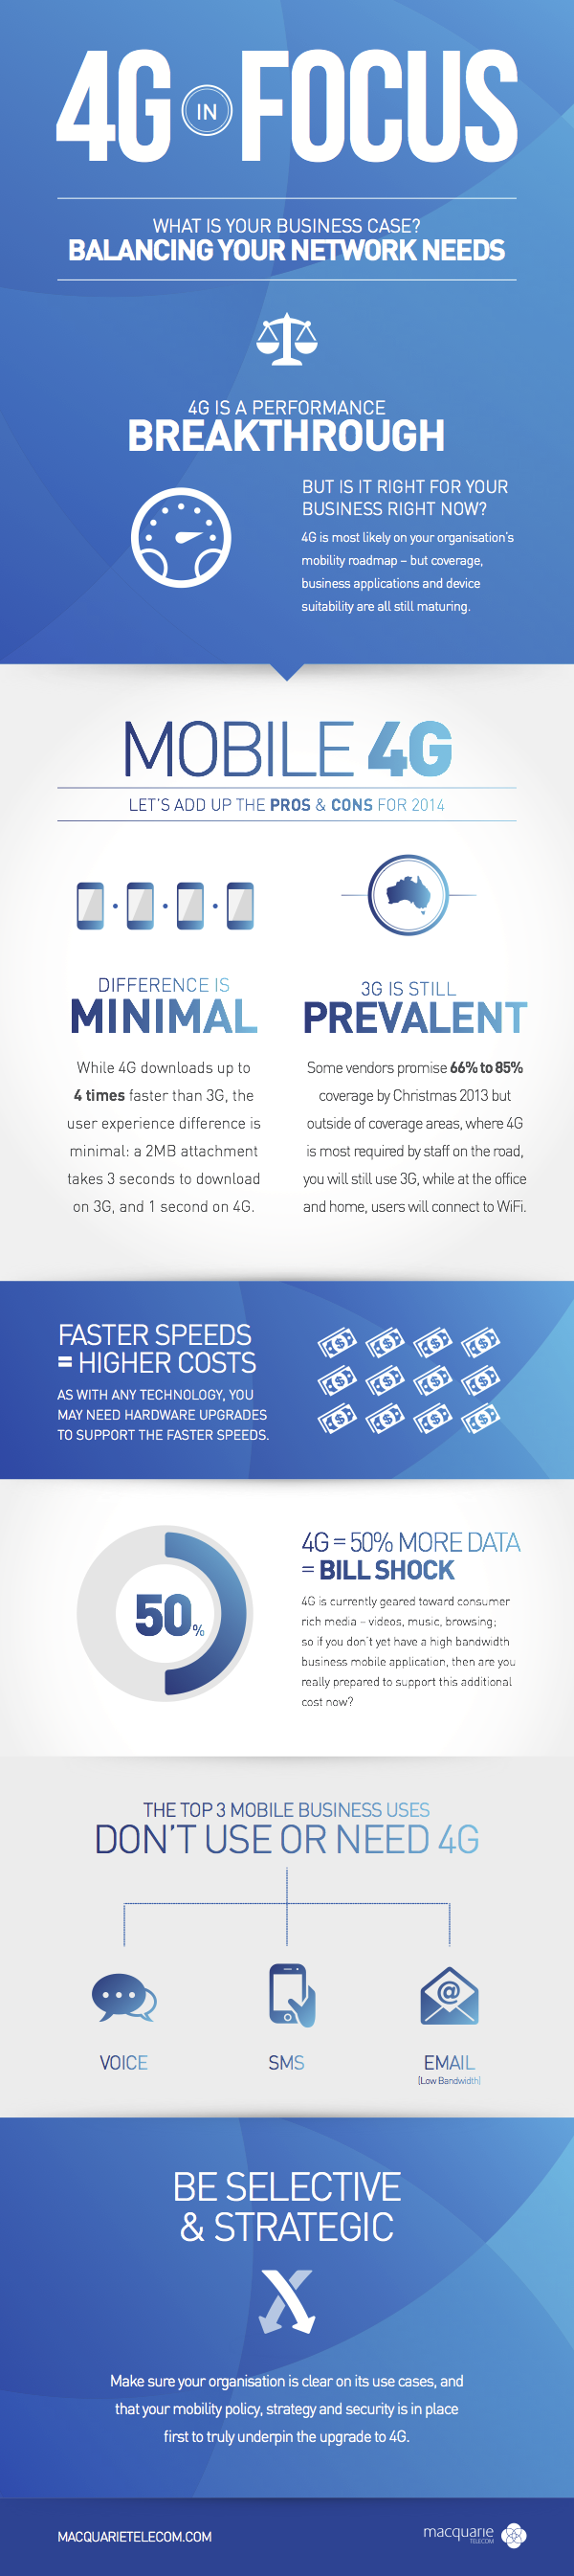 4G In Focus - What Is Your Business Case? - Balancing Your Network Needs #infographic